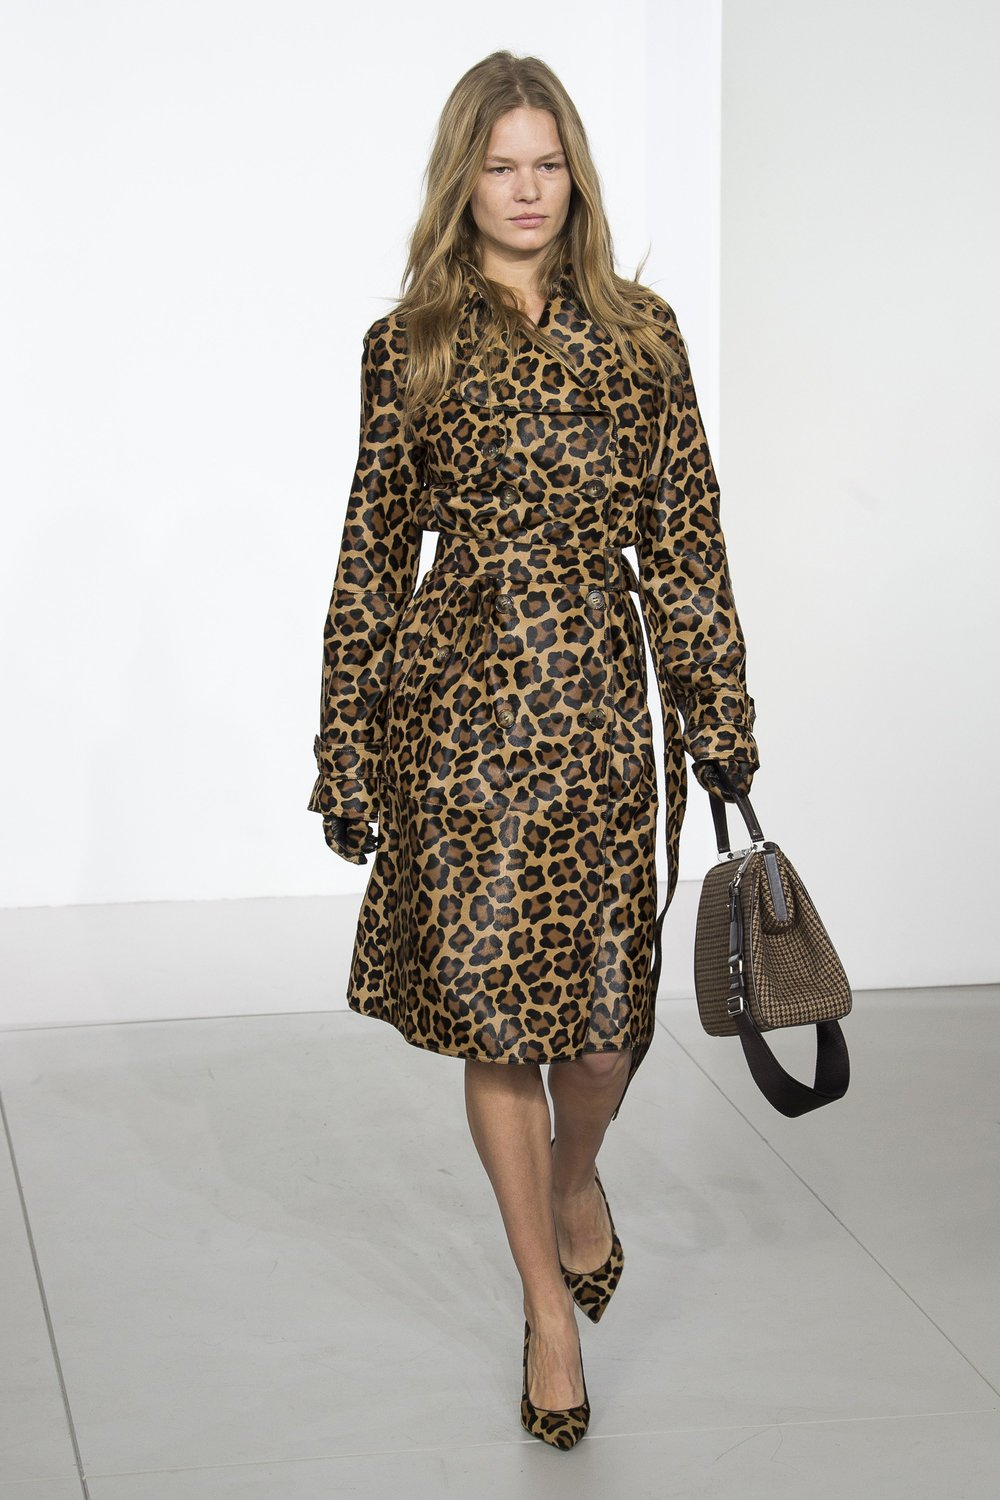 2018aw-Michael-Kors-Collection-07.jpg